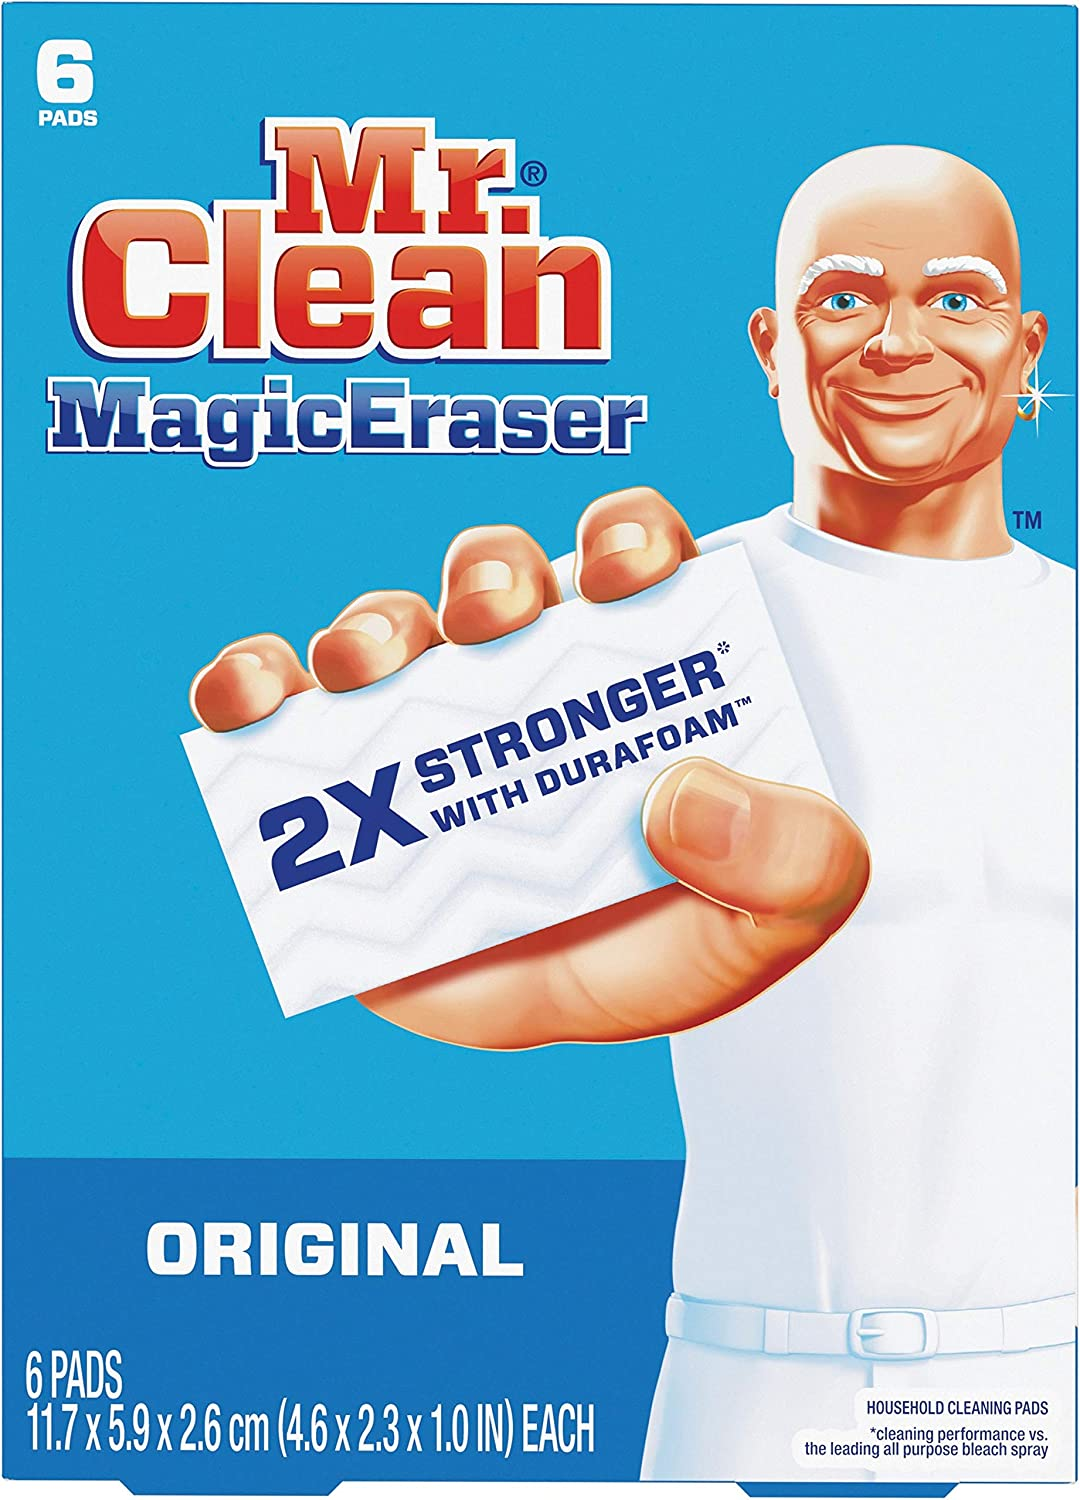 """Mr. Clean Magic Eraser Original Cleaning Pads with Durafoam, White 1"""" x 4.60"""" x 2.30"""", 6 Count : Health & Household"""